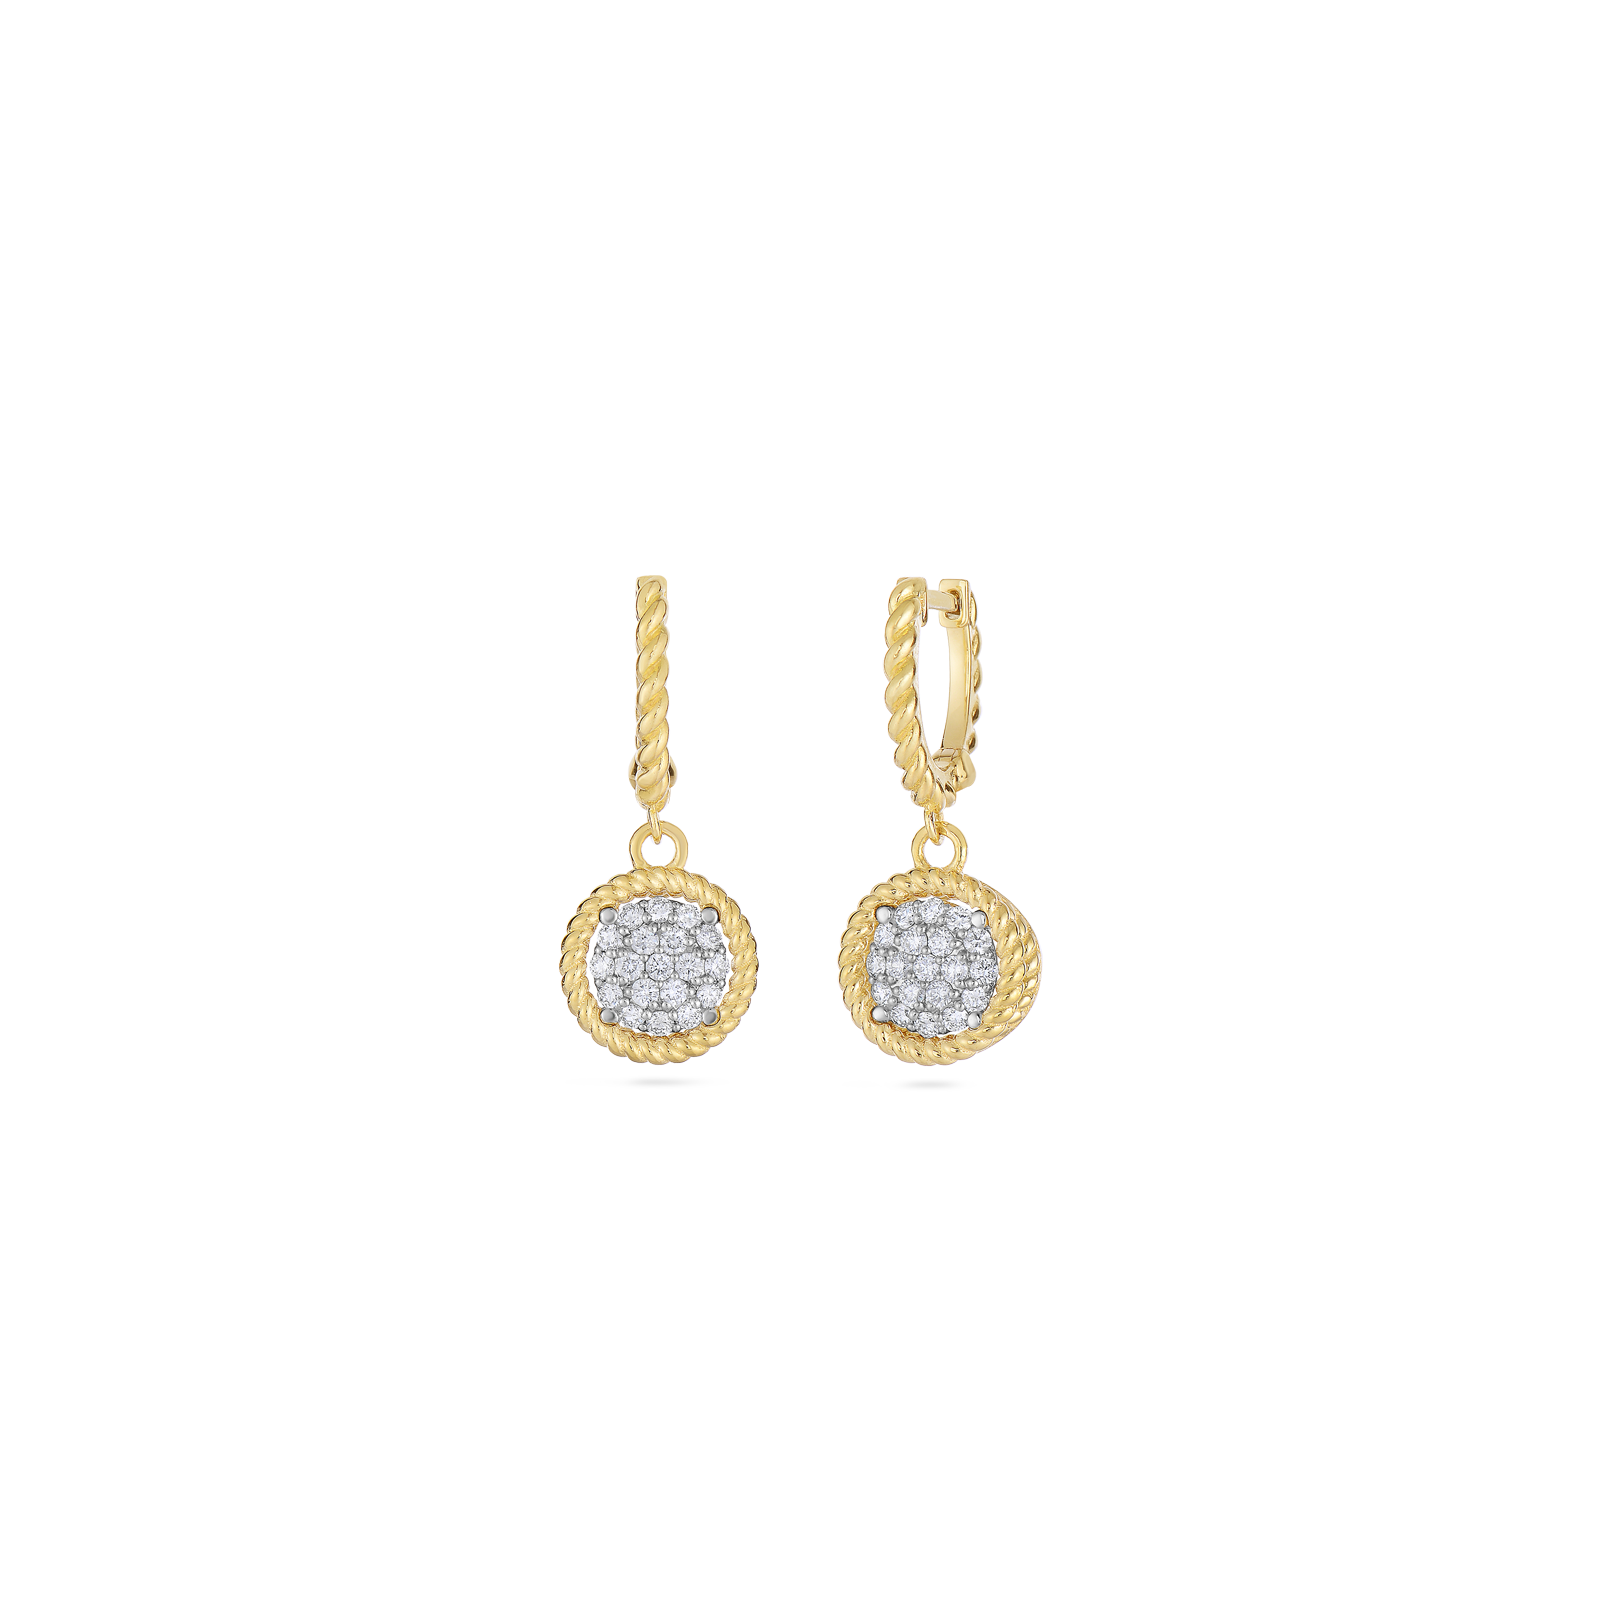 bk e g triple precious earrings gold plated drop semi circle circular